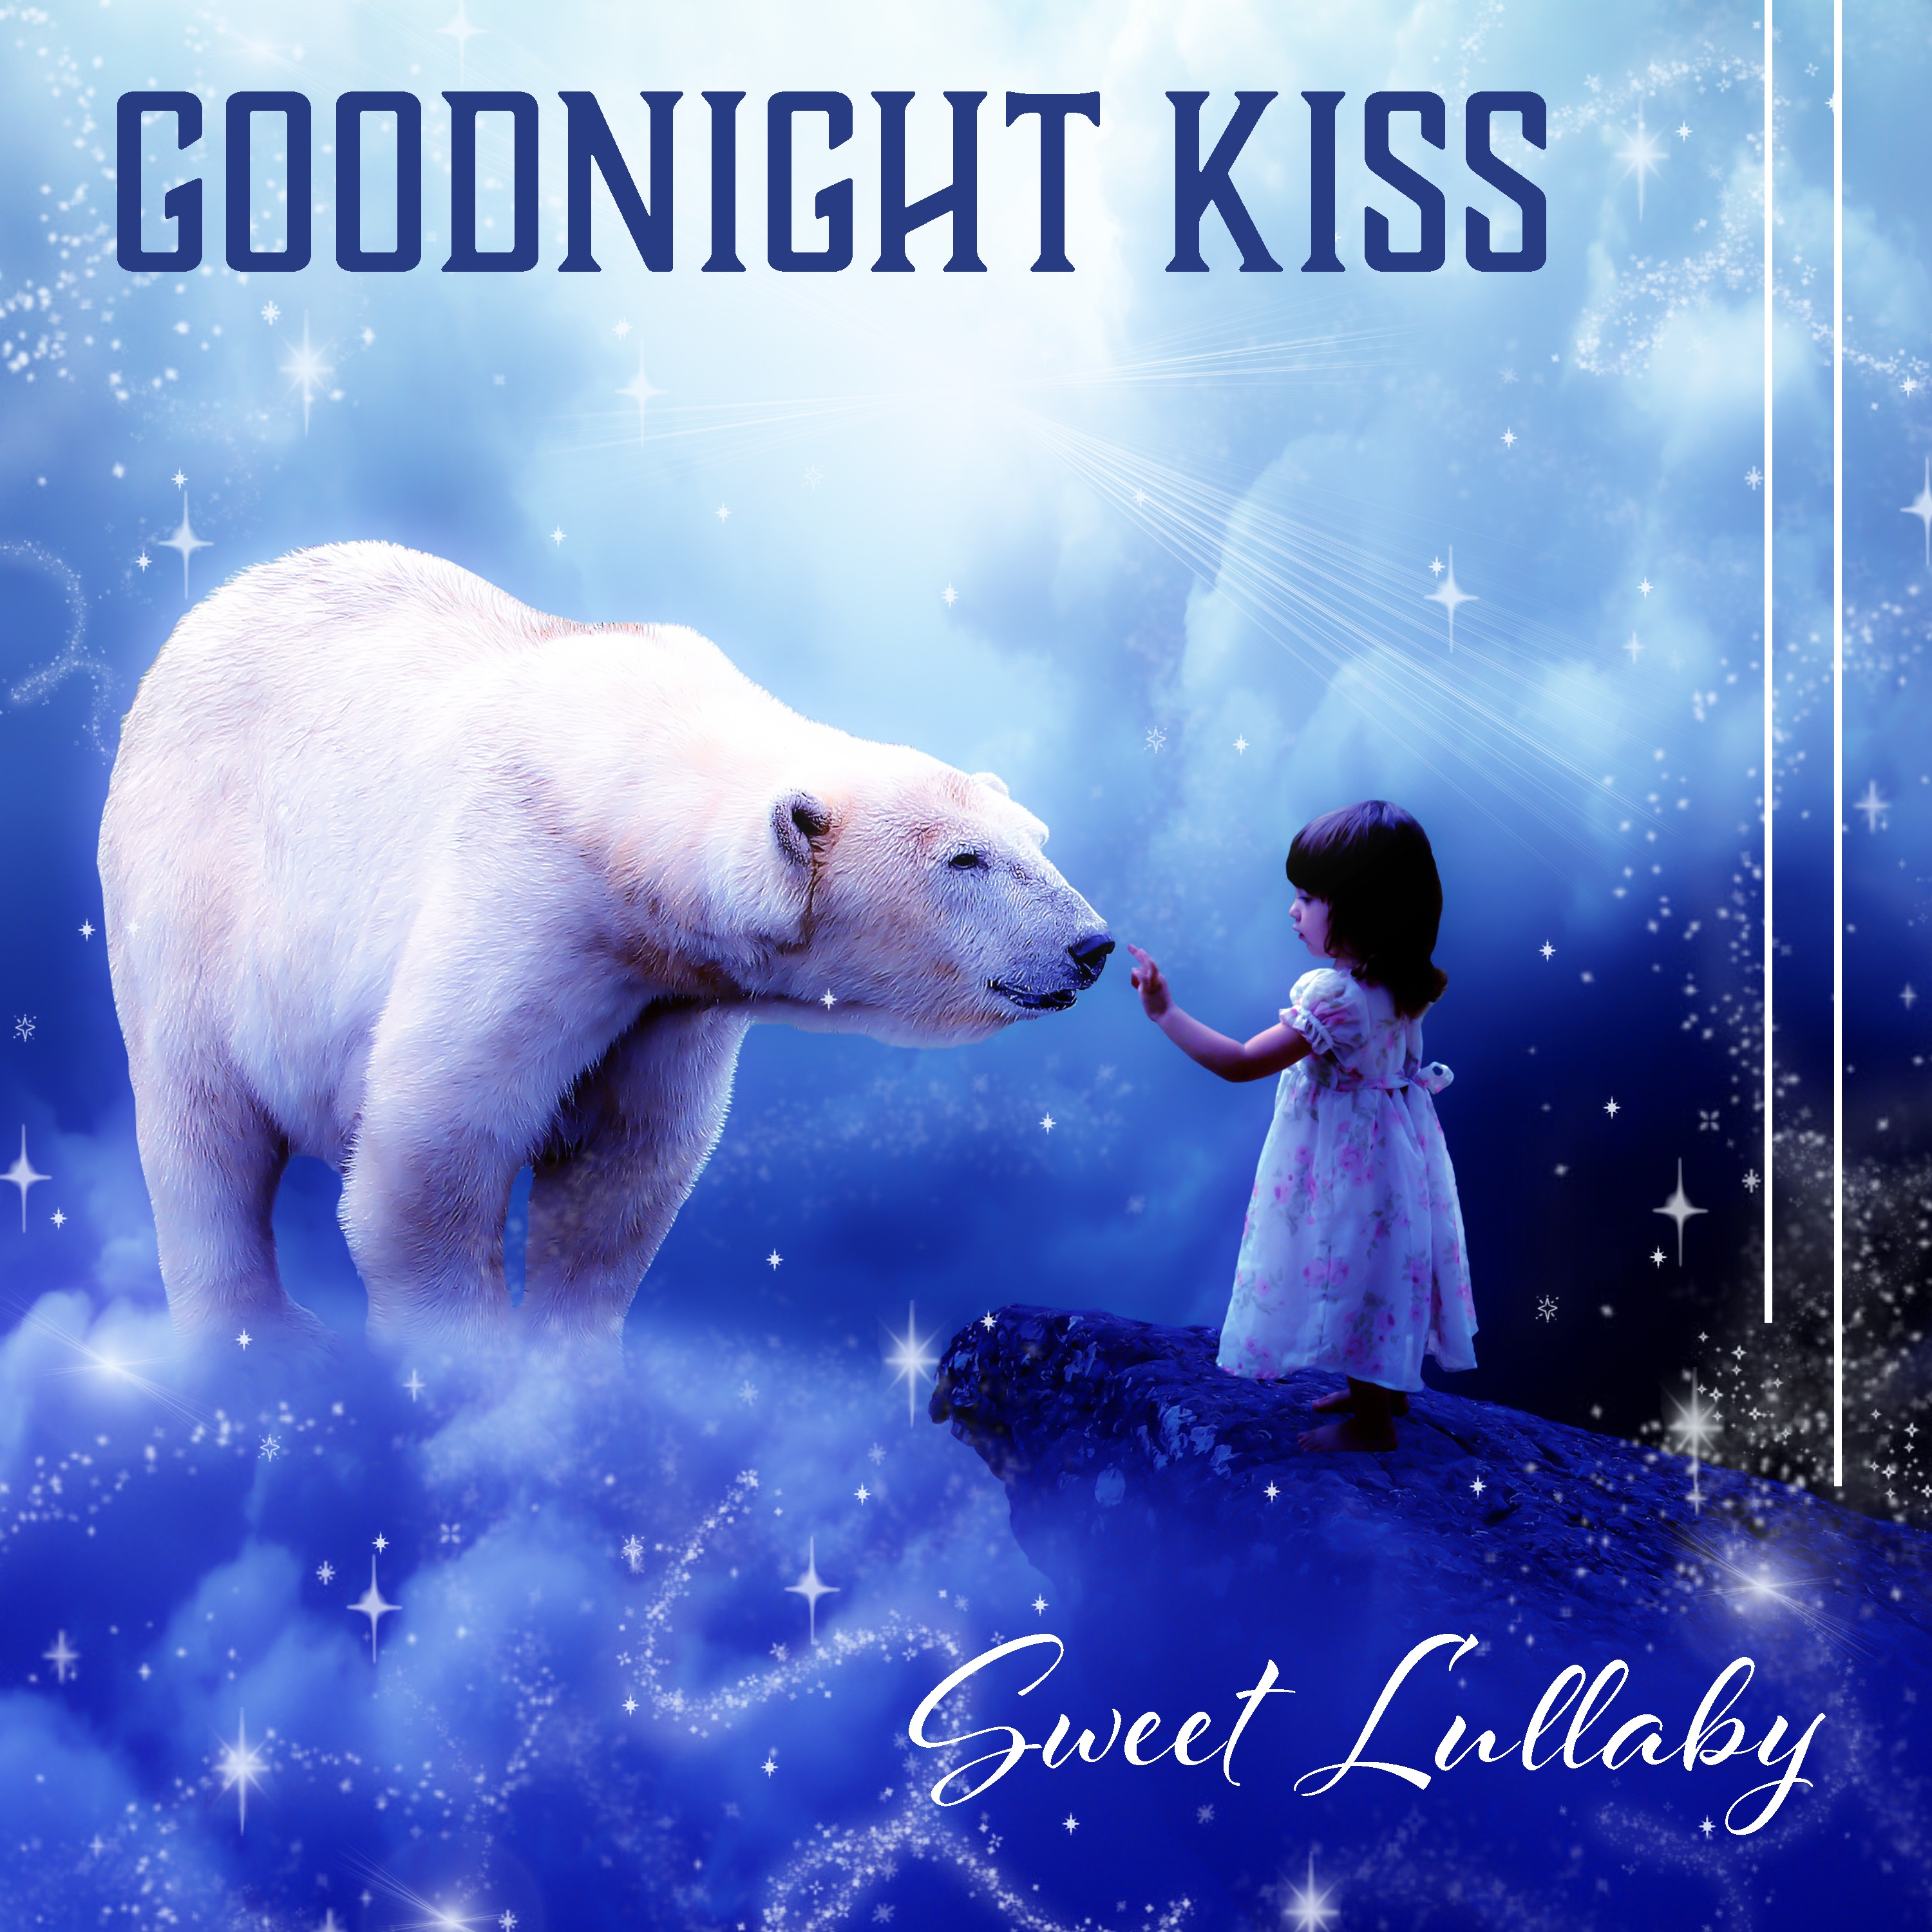 MP3 Songs Online:♫ Spirit of Harmony - Baby Lullaby Zone album Goodnight Kiss: Sweet Lullaby - Long Quiet Dream, Land of Happiness, Crying Baby, Natural Sleep Aid, Well Being, Mood Music. New Age,Music listen to music online free without downloading.